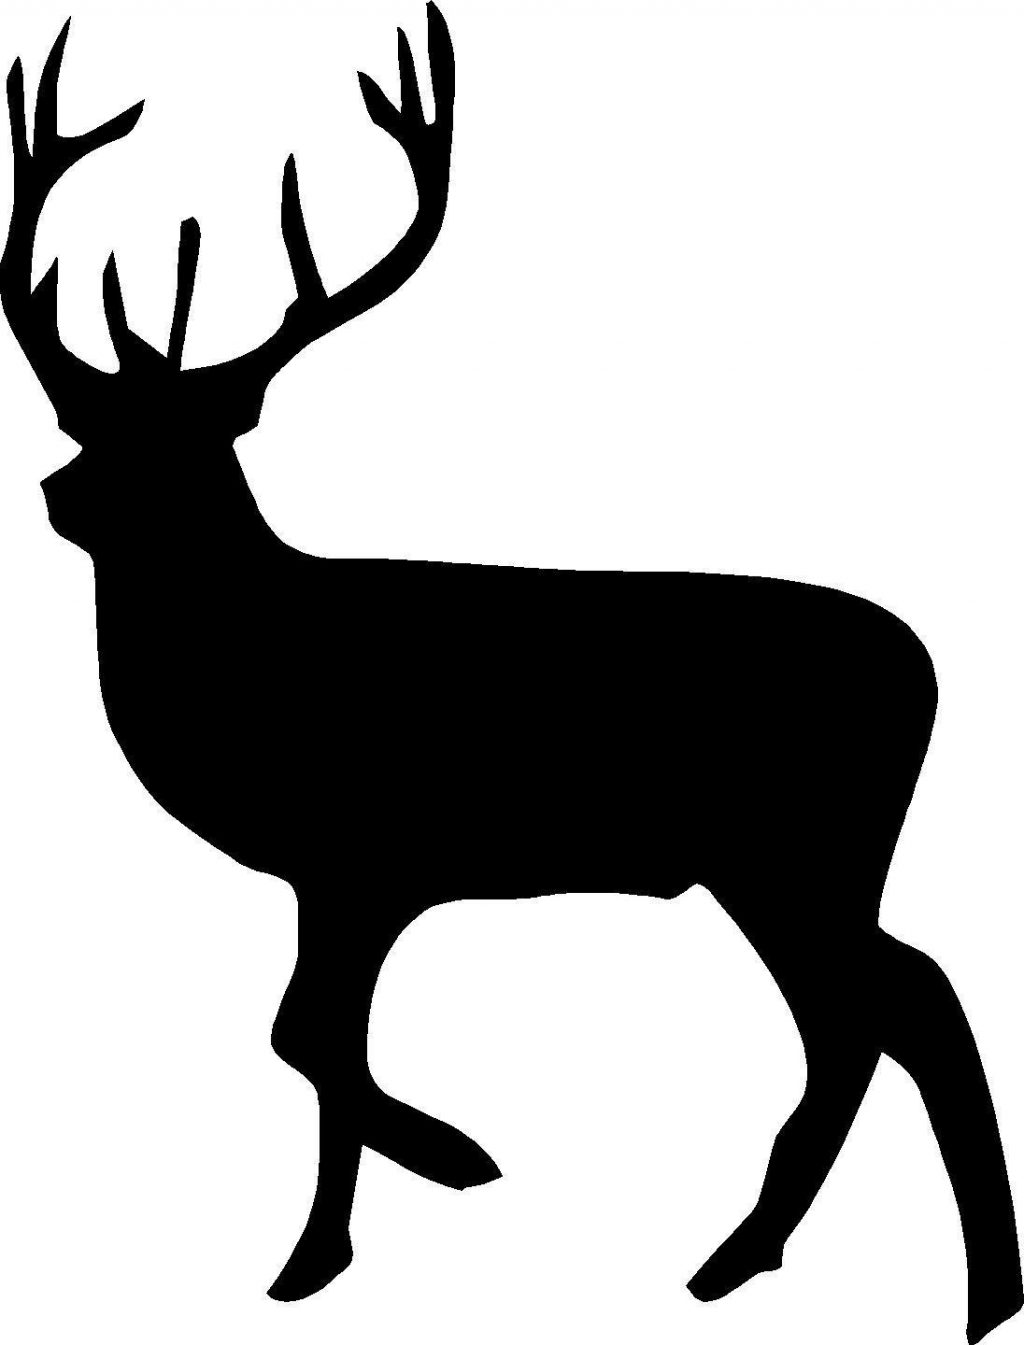 deer silhouette free at getdrawings com free for personal use deer rh getdrawings com deer clip art printable deer clip art free